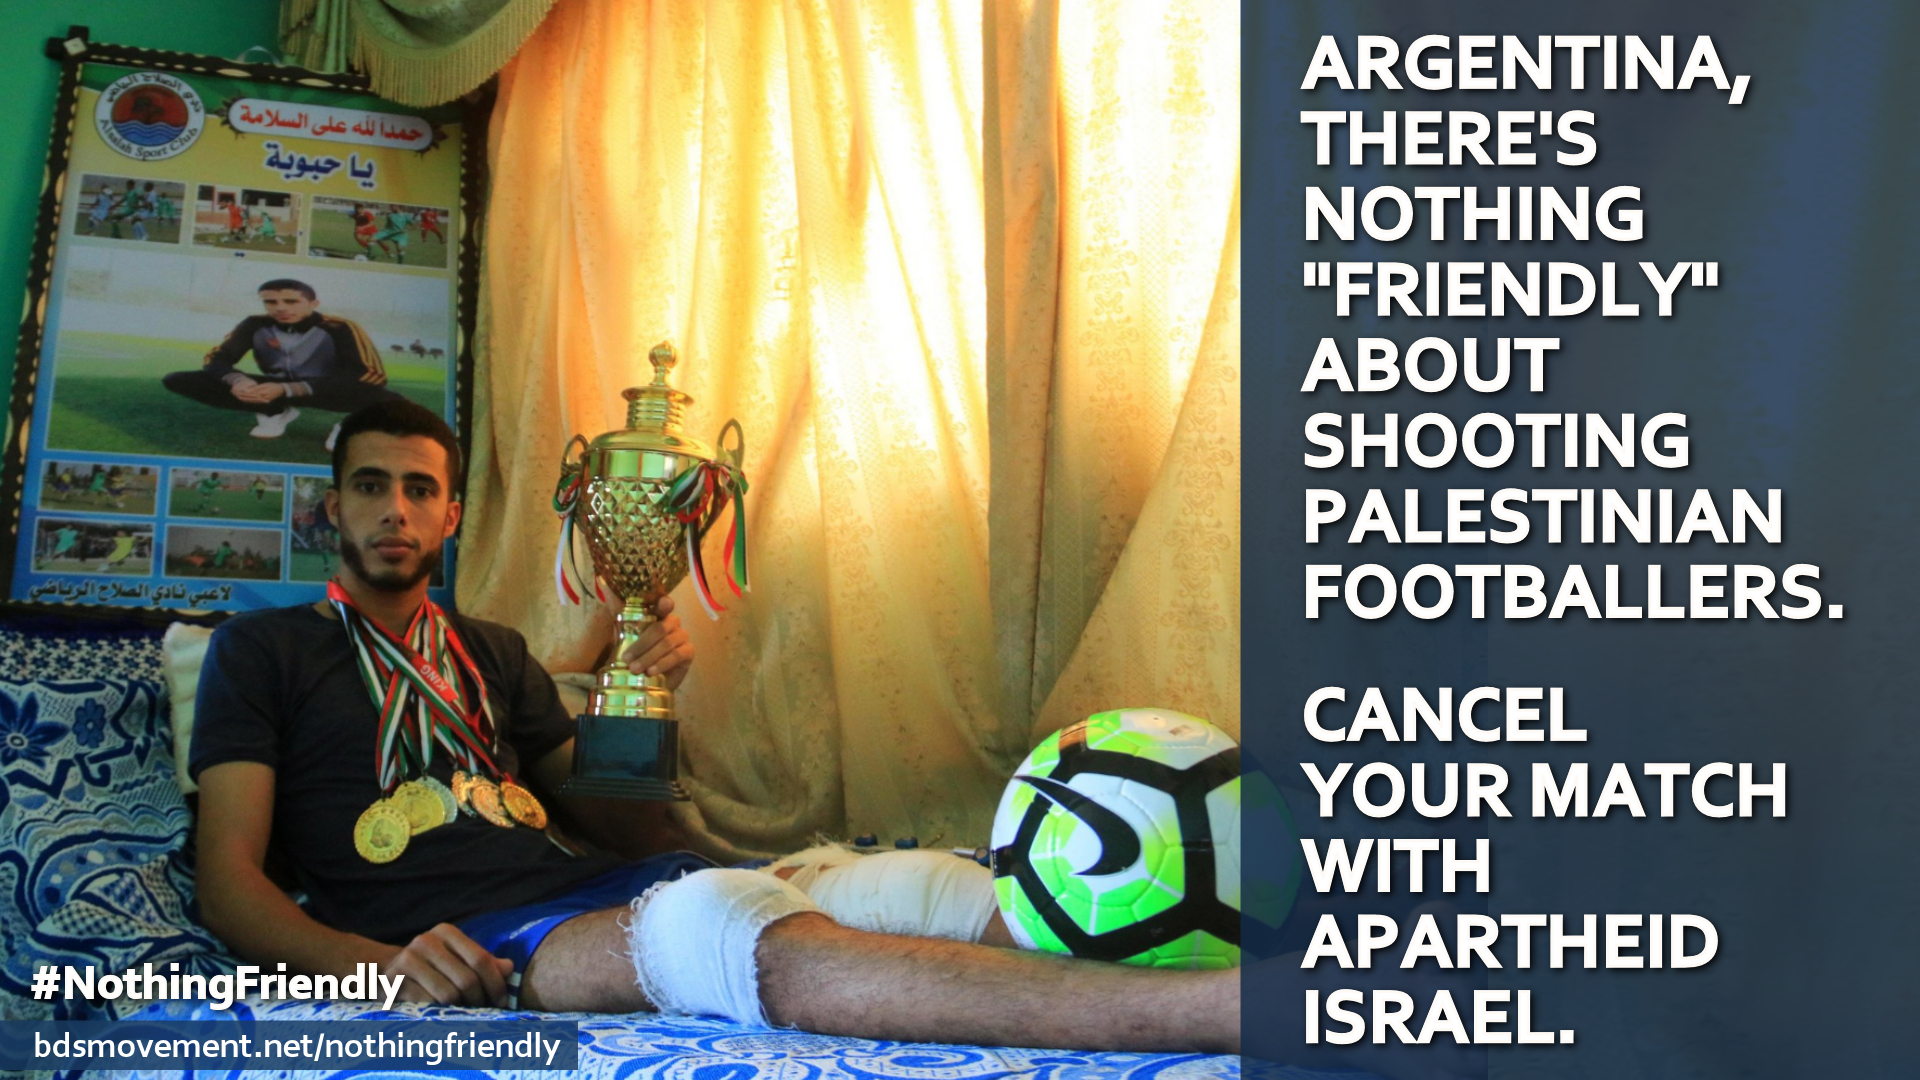 Tell Argentina: There's nothing friendly about Israel shooting Palestinian footballers